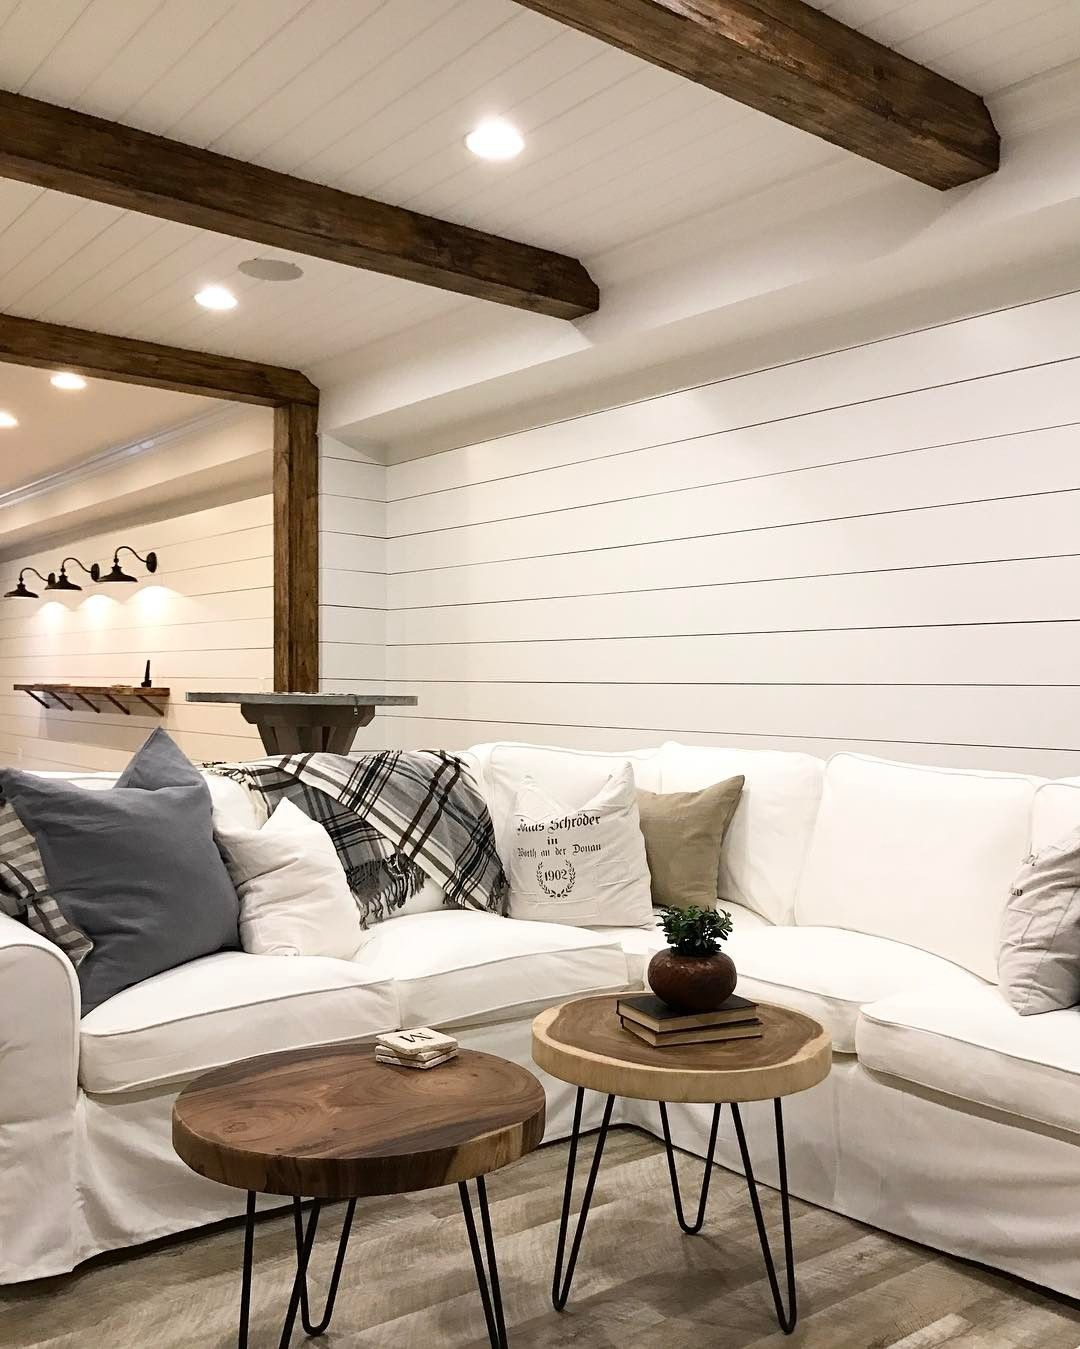 25+ Astonishing Unfinished Basement Ideas That You Should